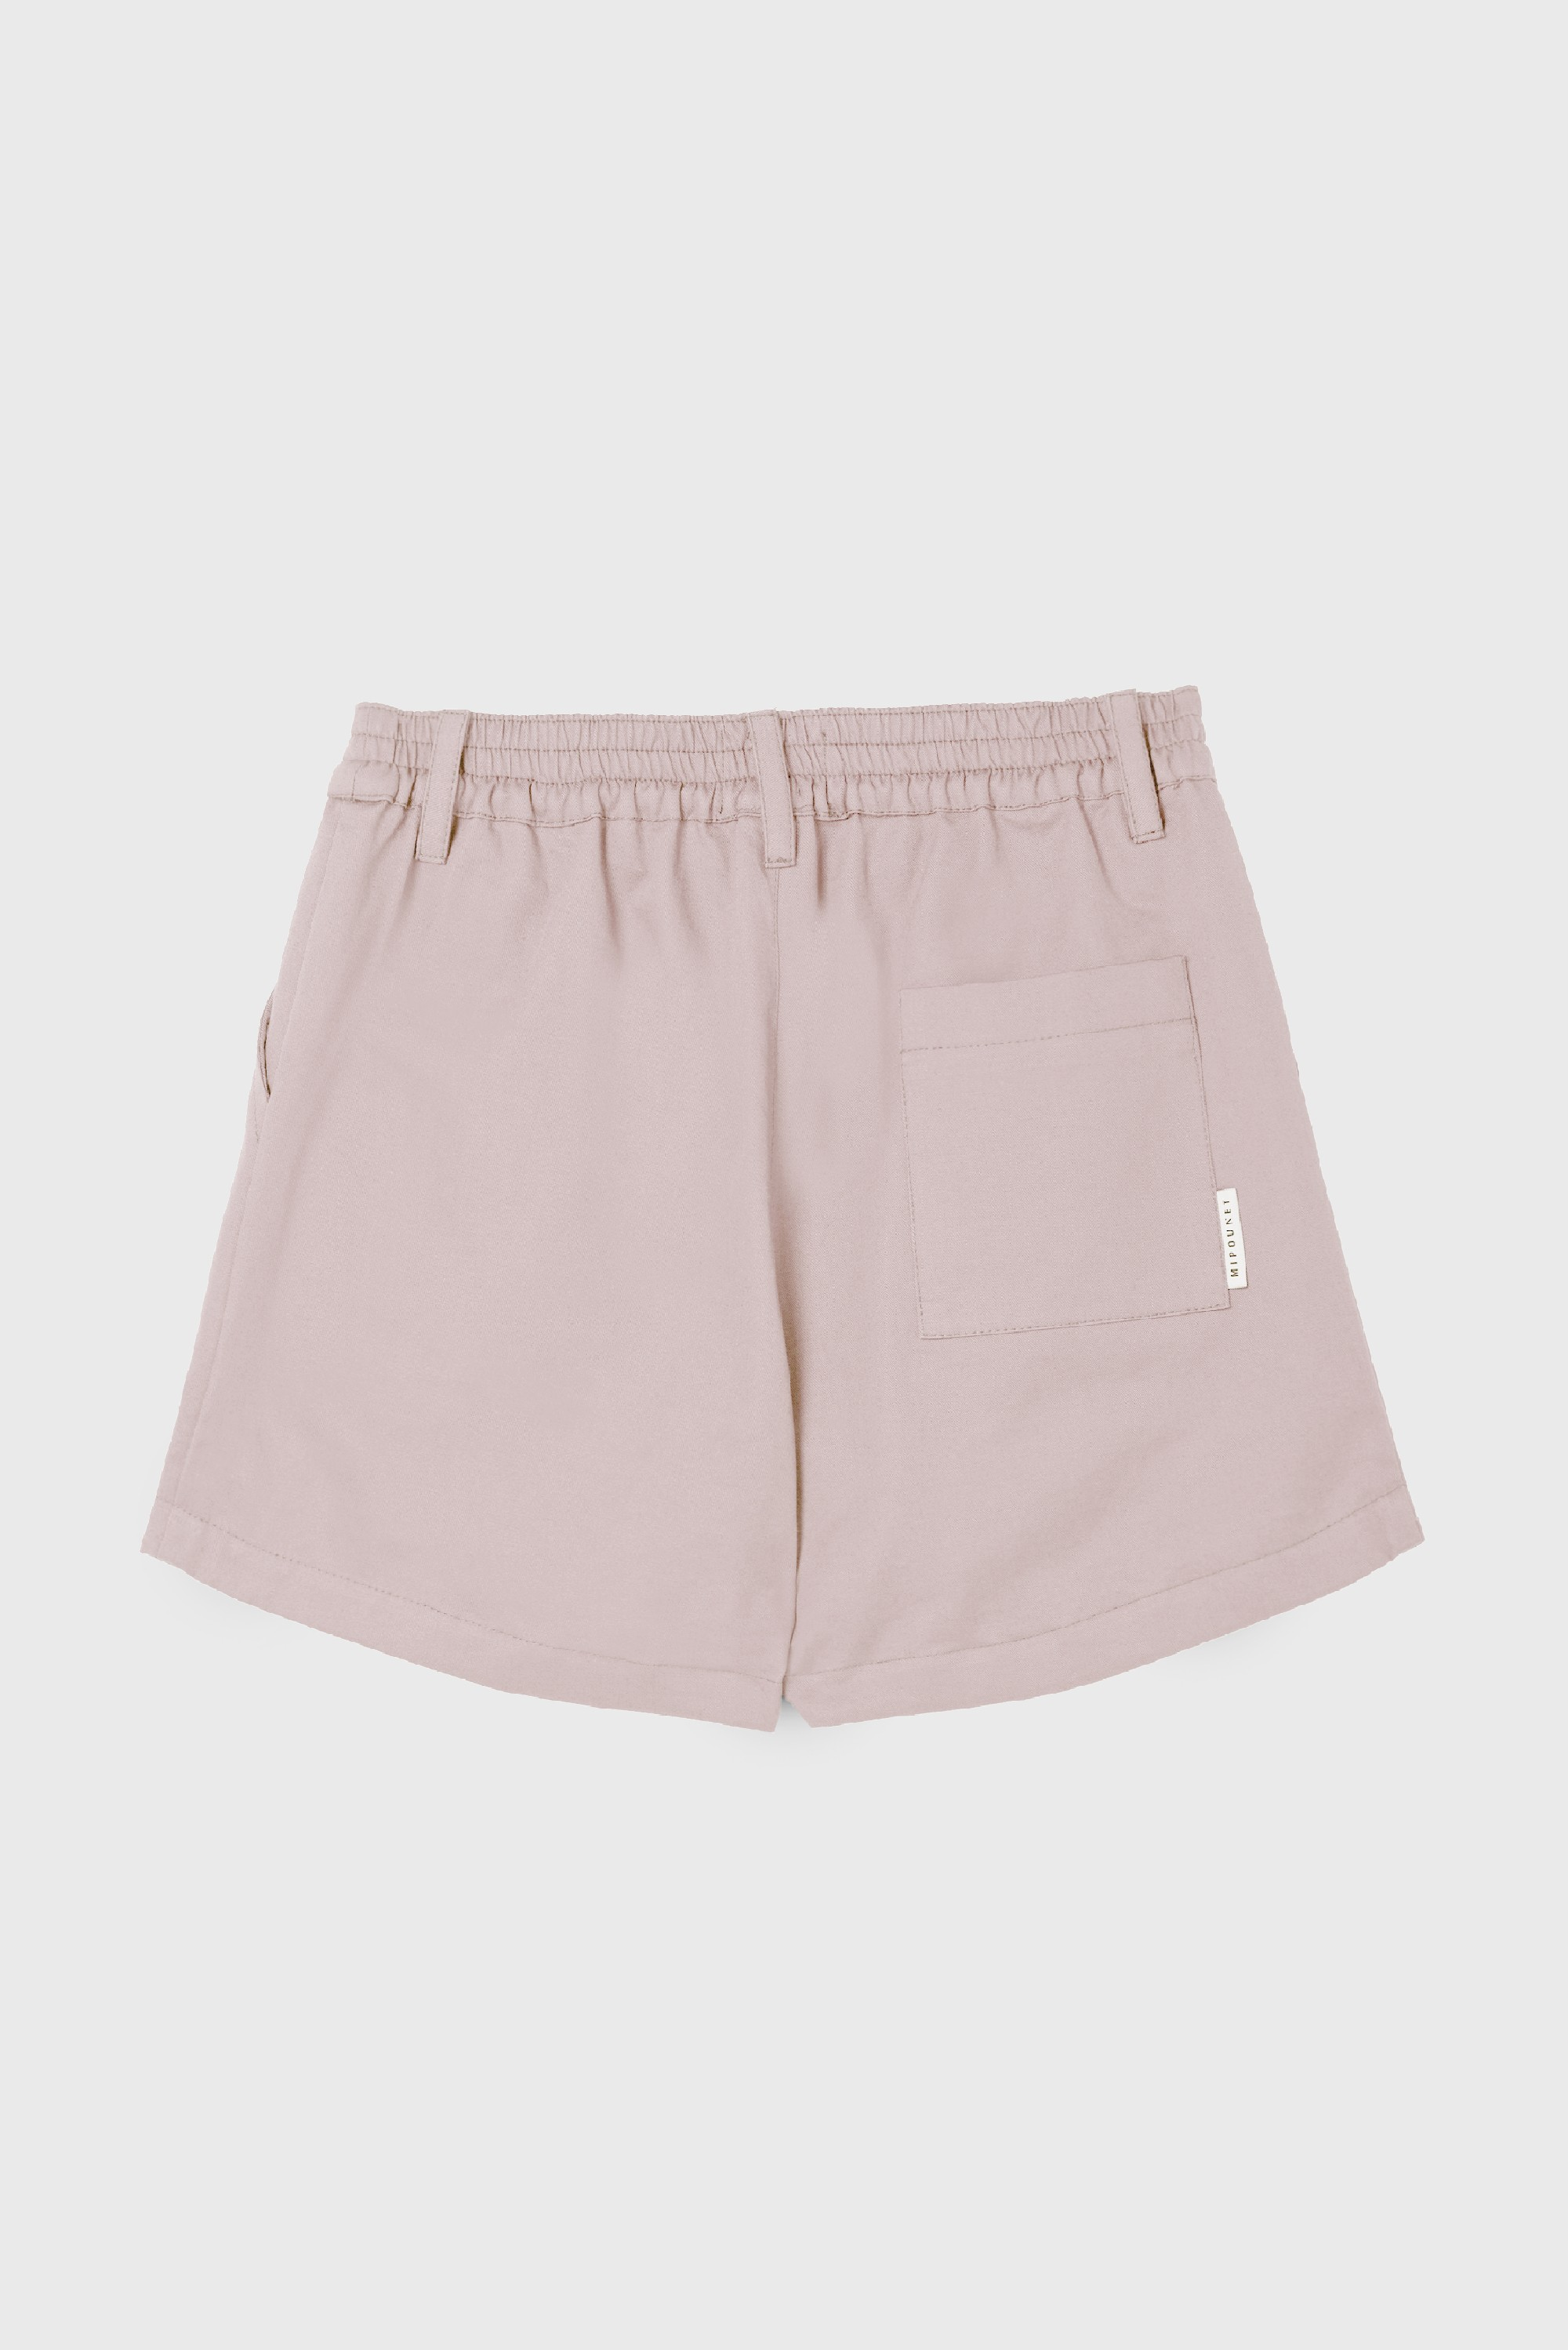 PINK COTTON GABARDINE PLEATED SHORT